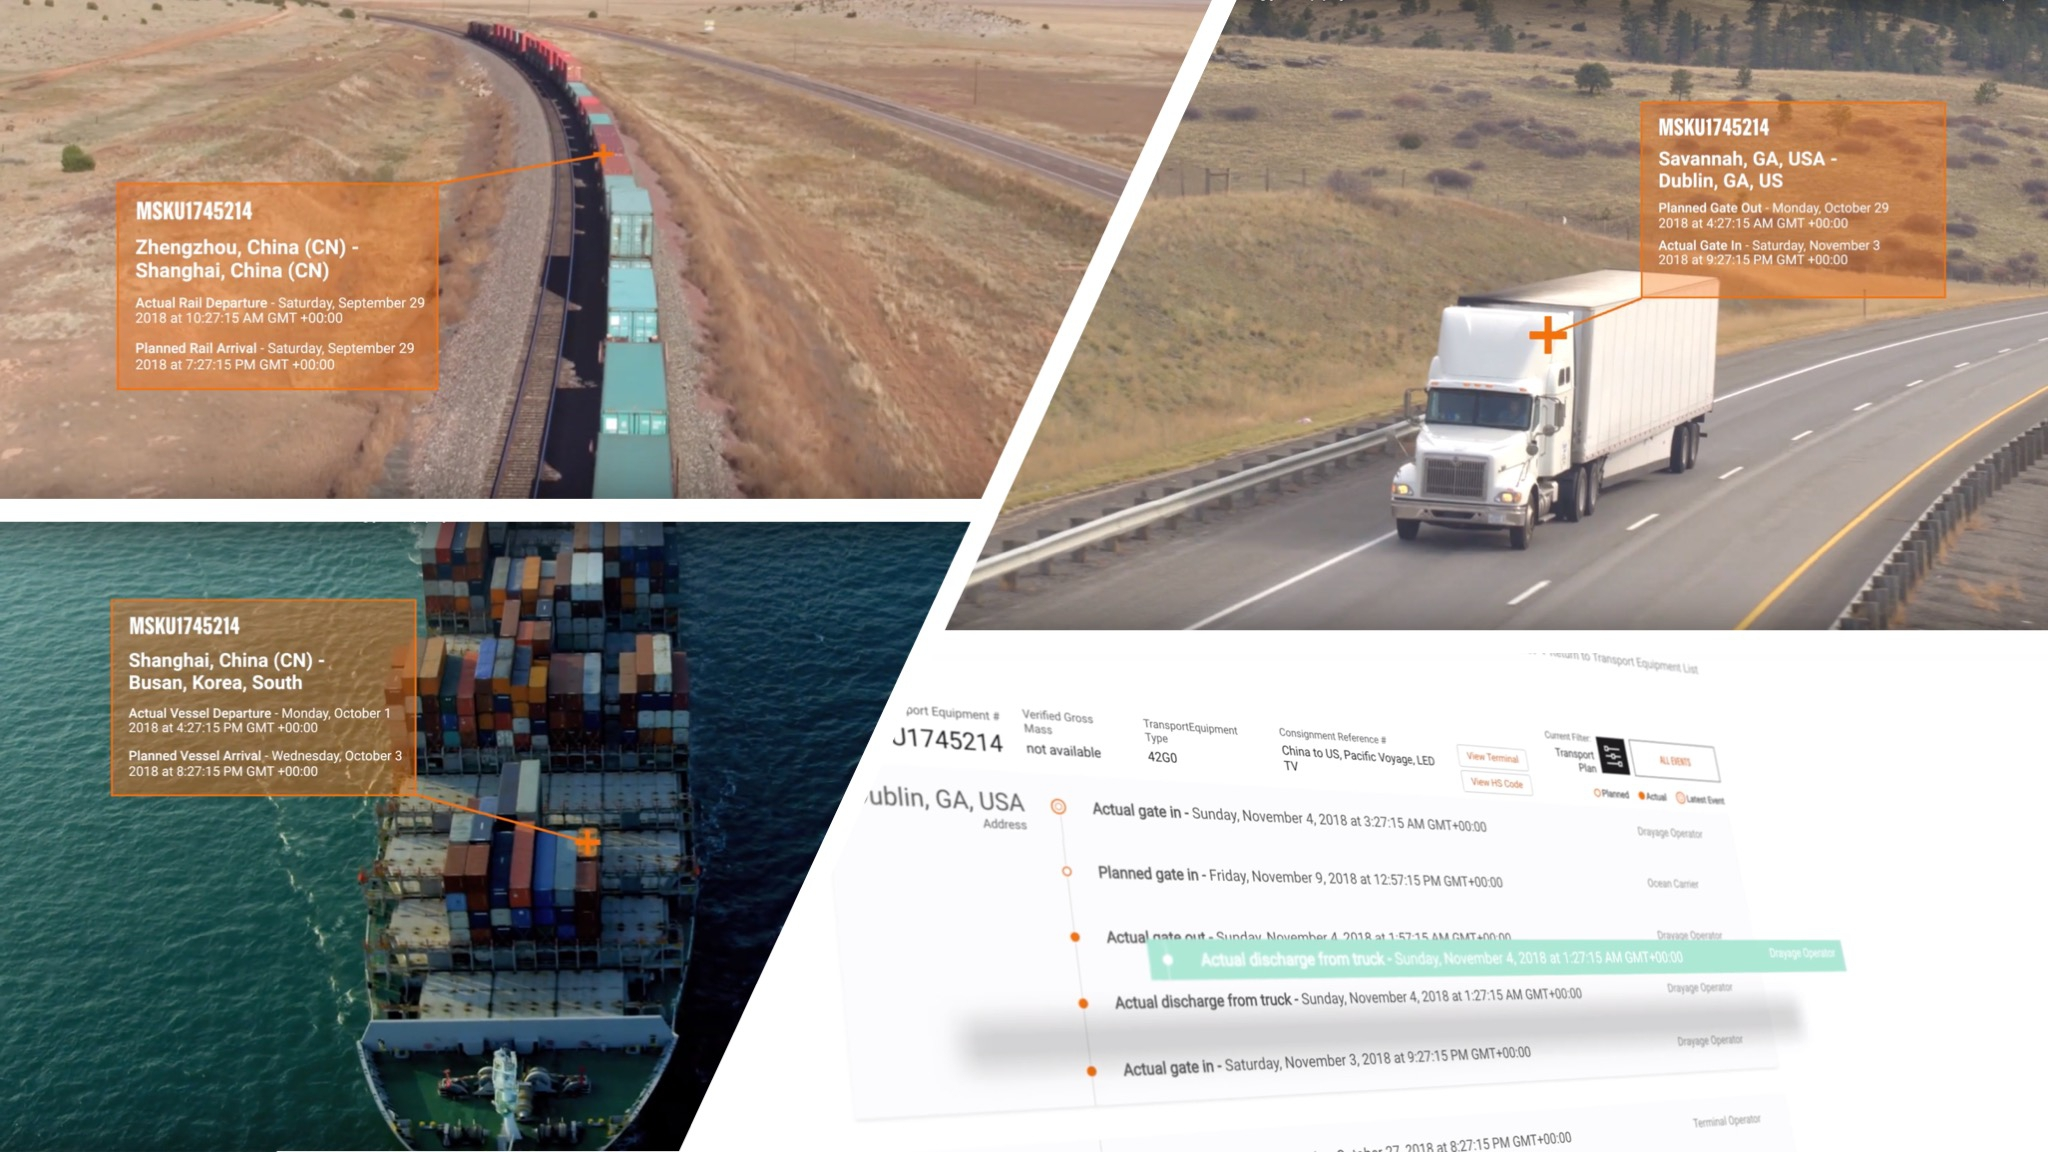 Tradelens, the platform for tracking global shipments by IBM and Maersk